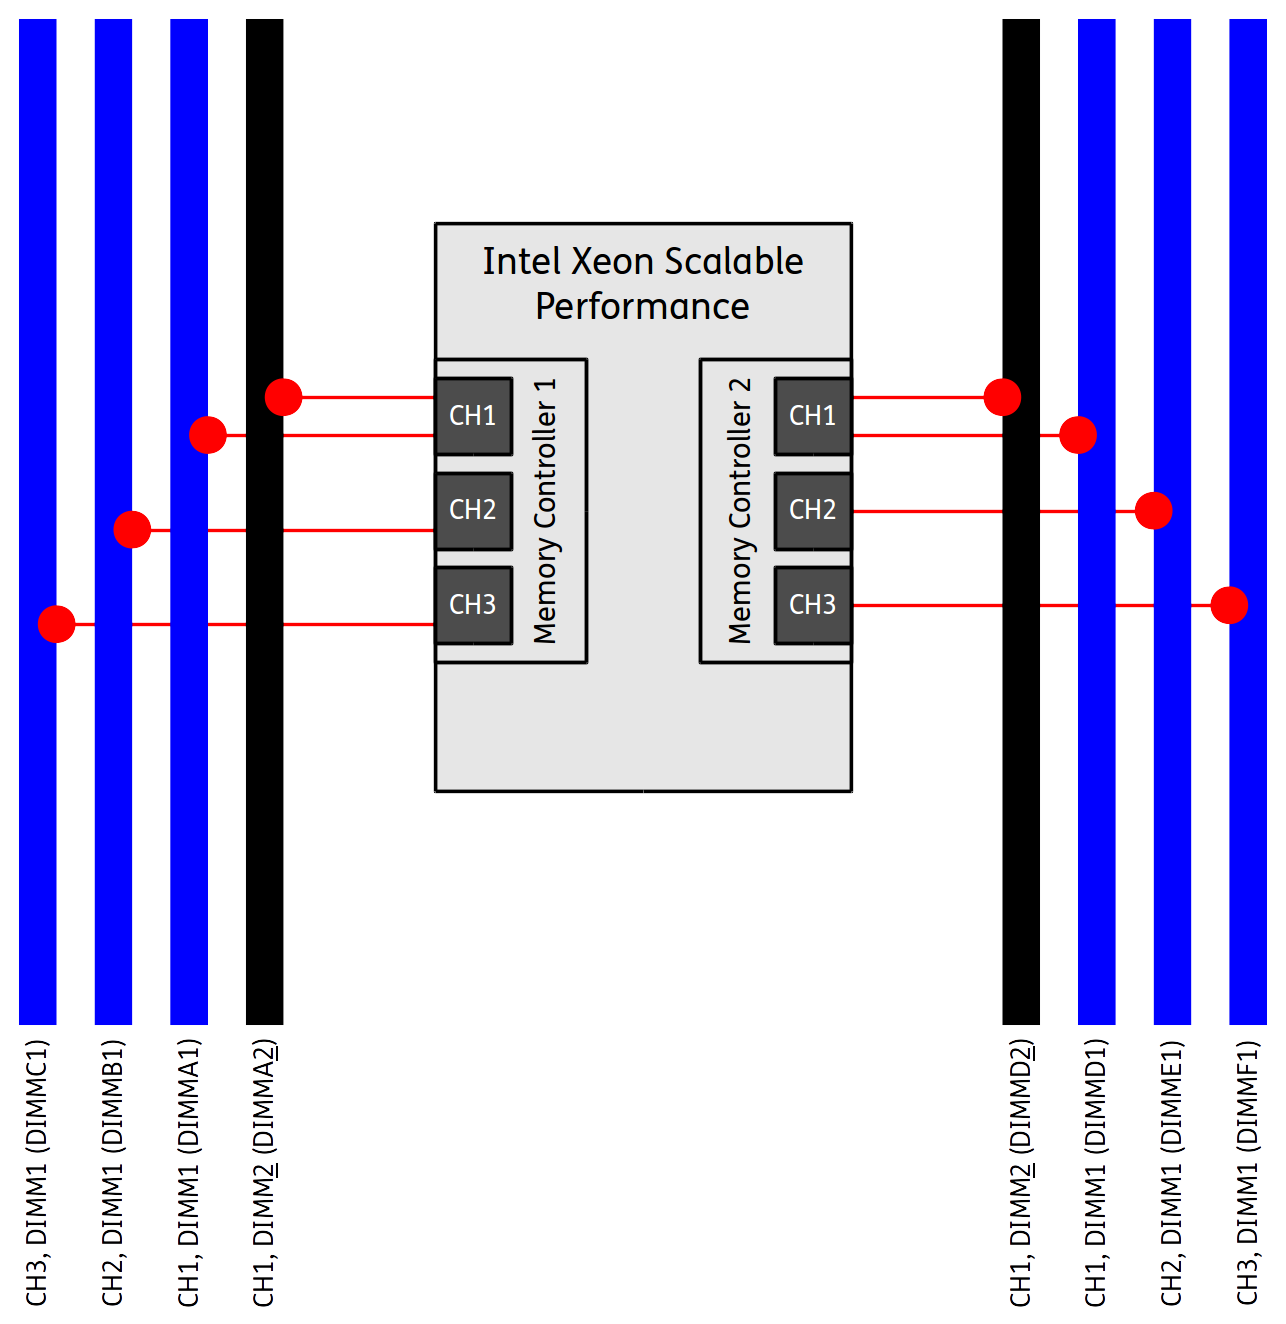 Optimize memory performance of Intel Xeon Scalable systems